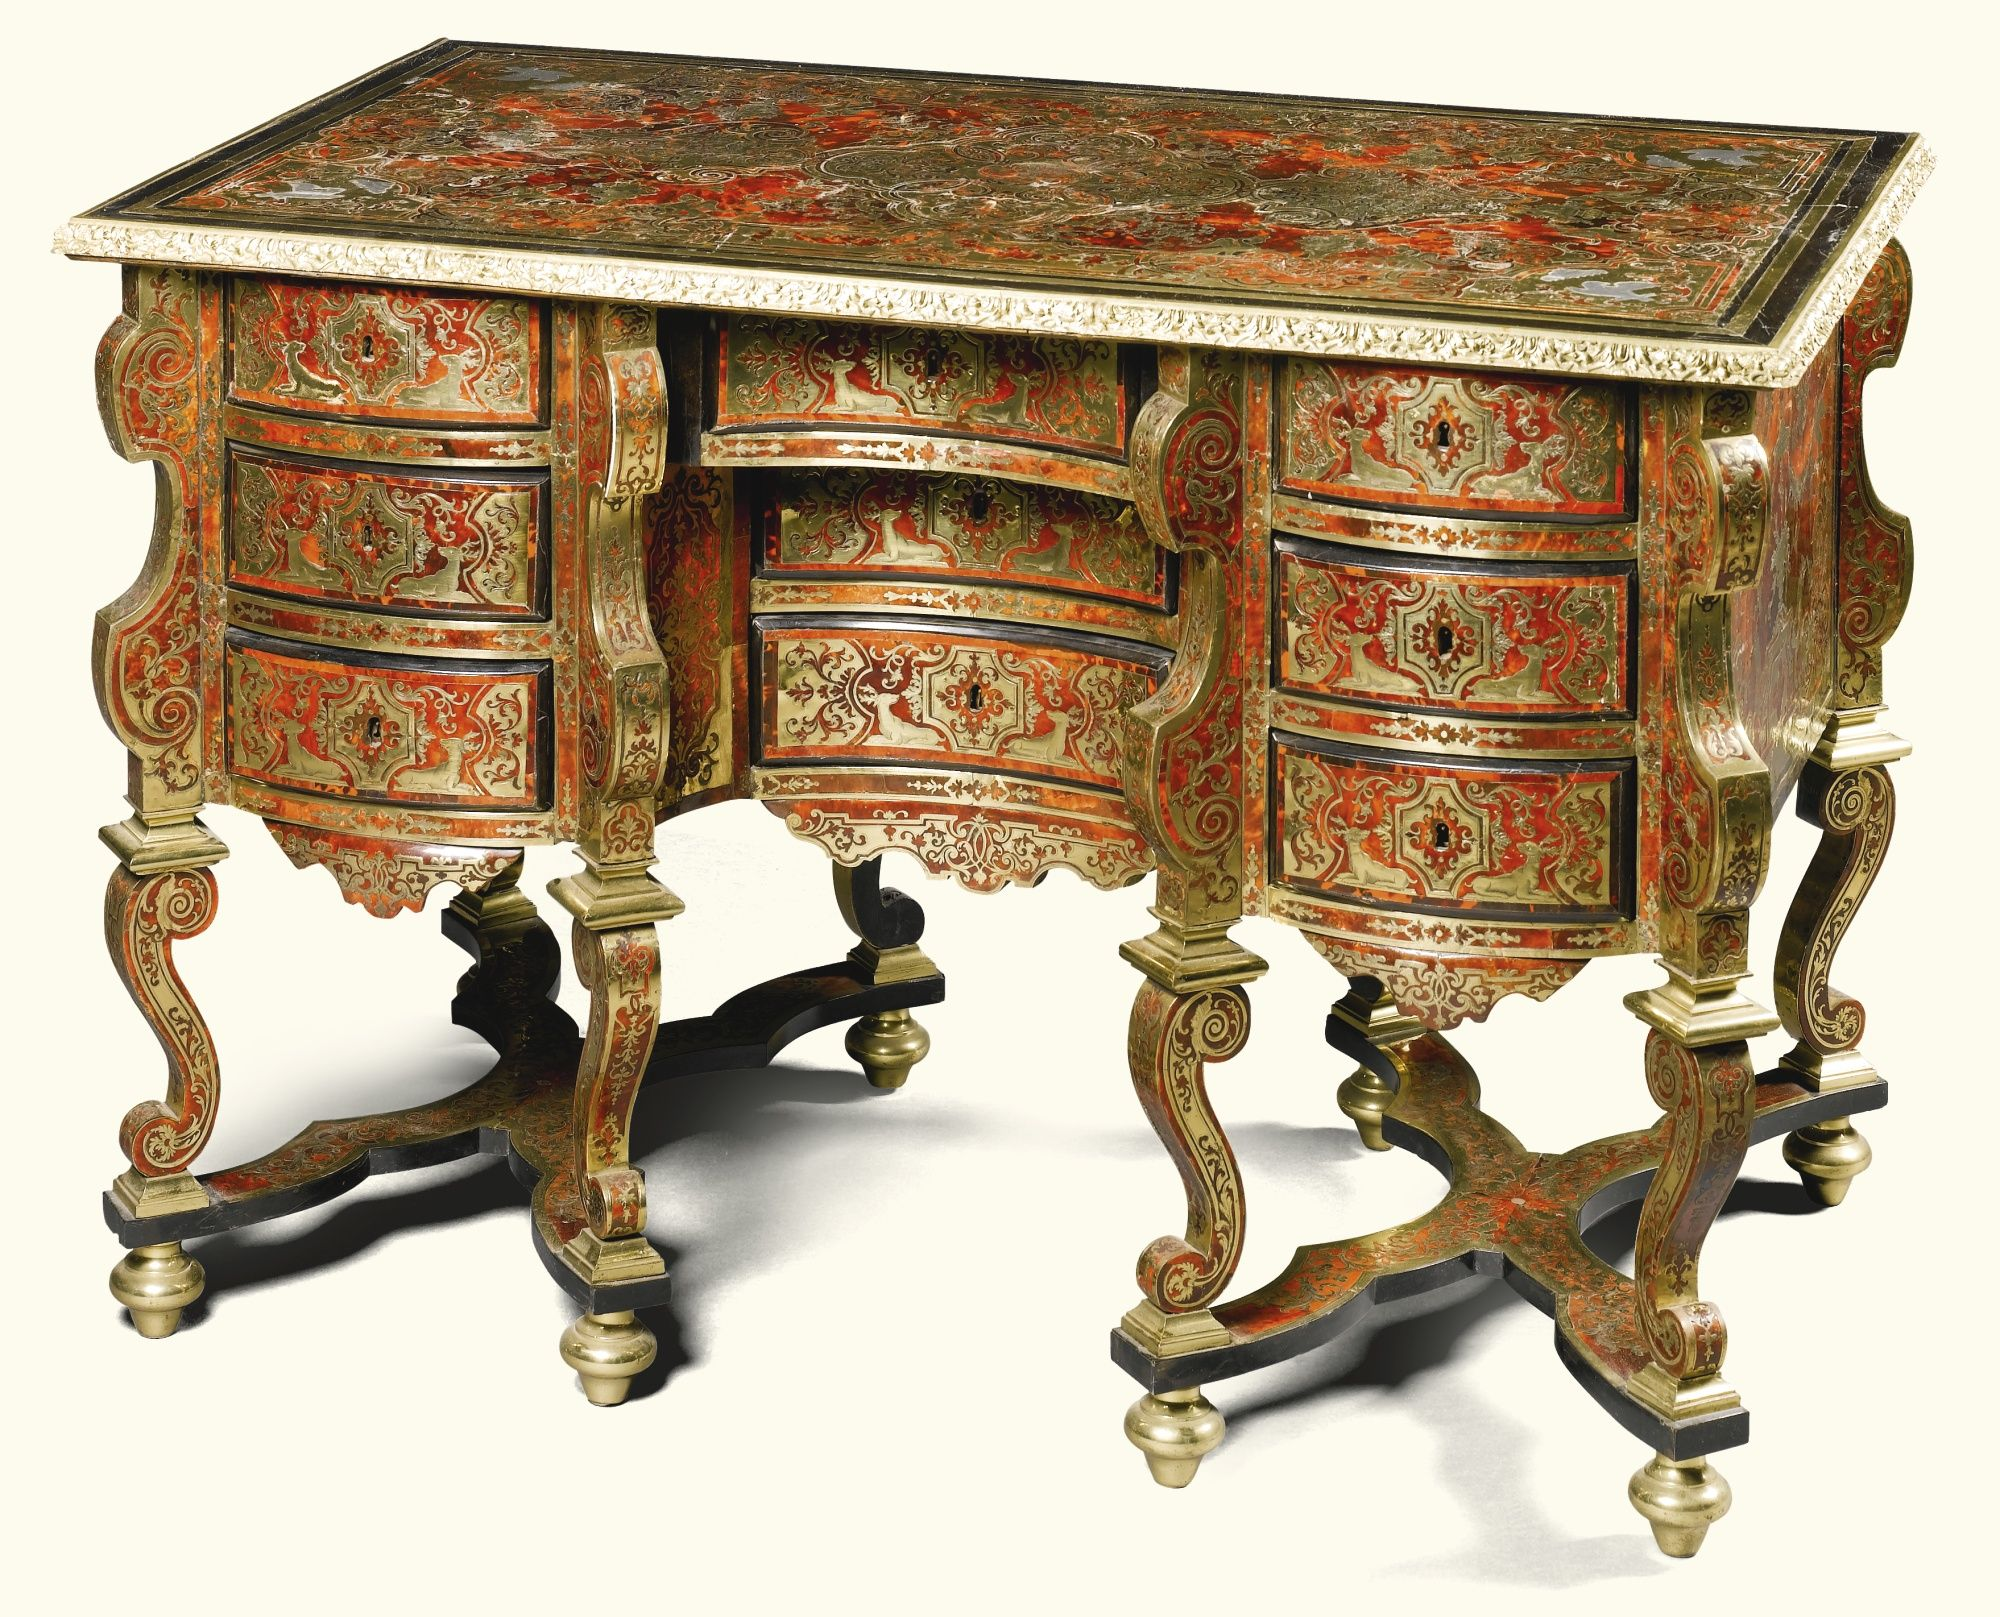 Louis The 14th Furniture A Tortoiseshell Pewter And Brass Inlaid PremiÈre Partie